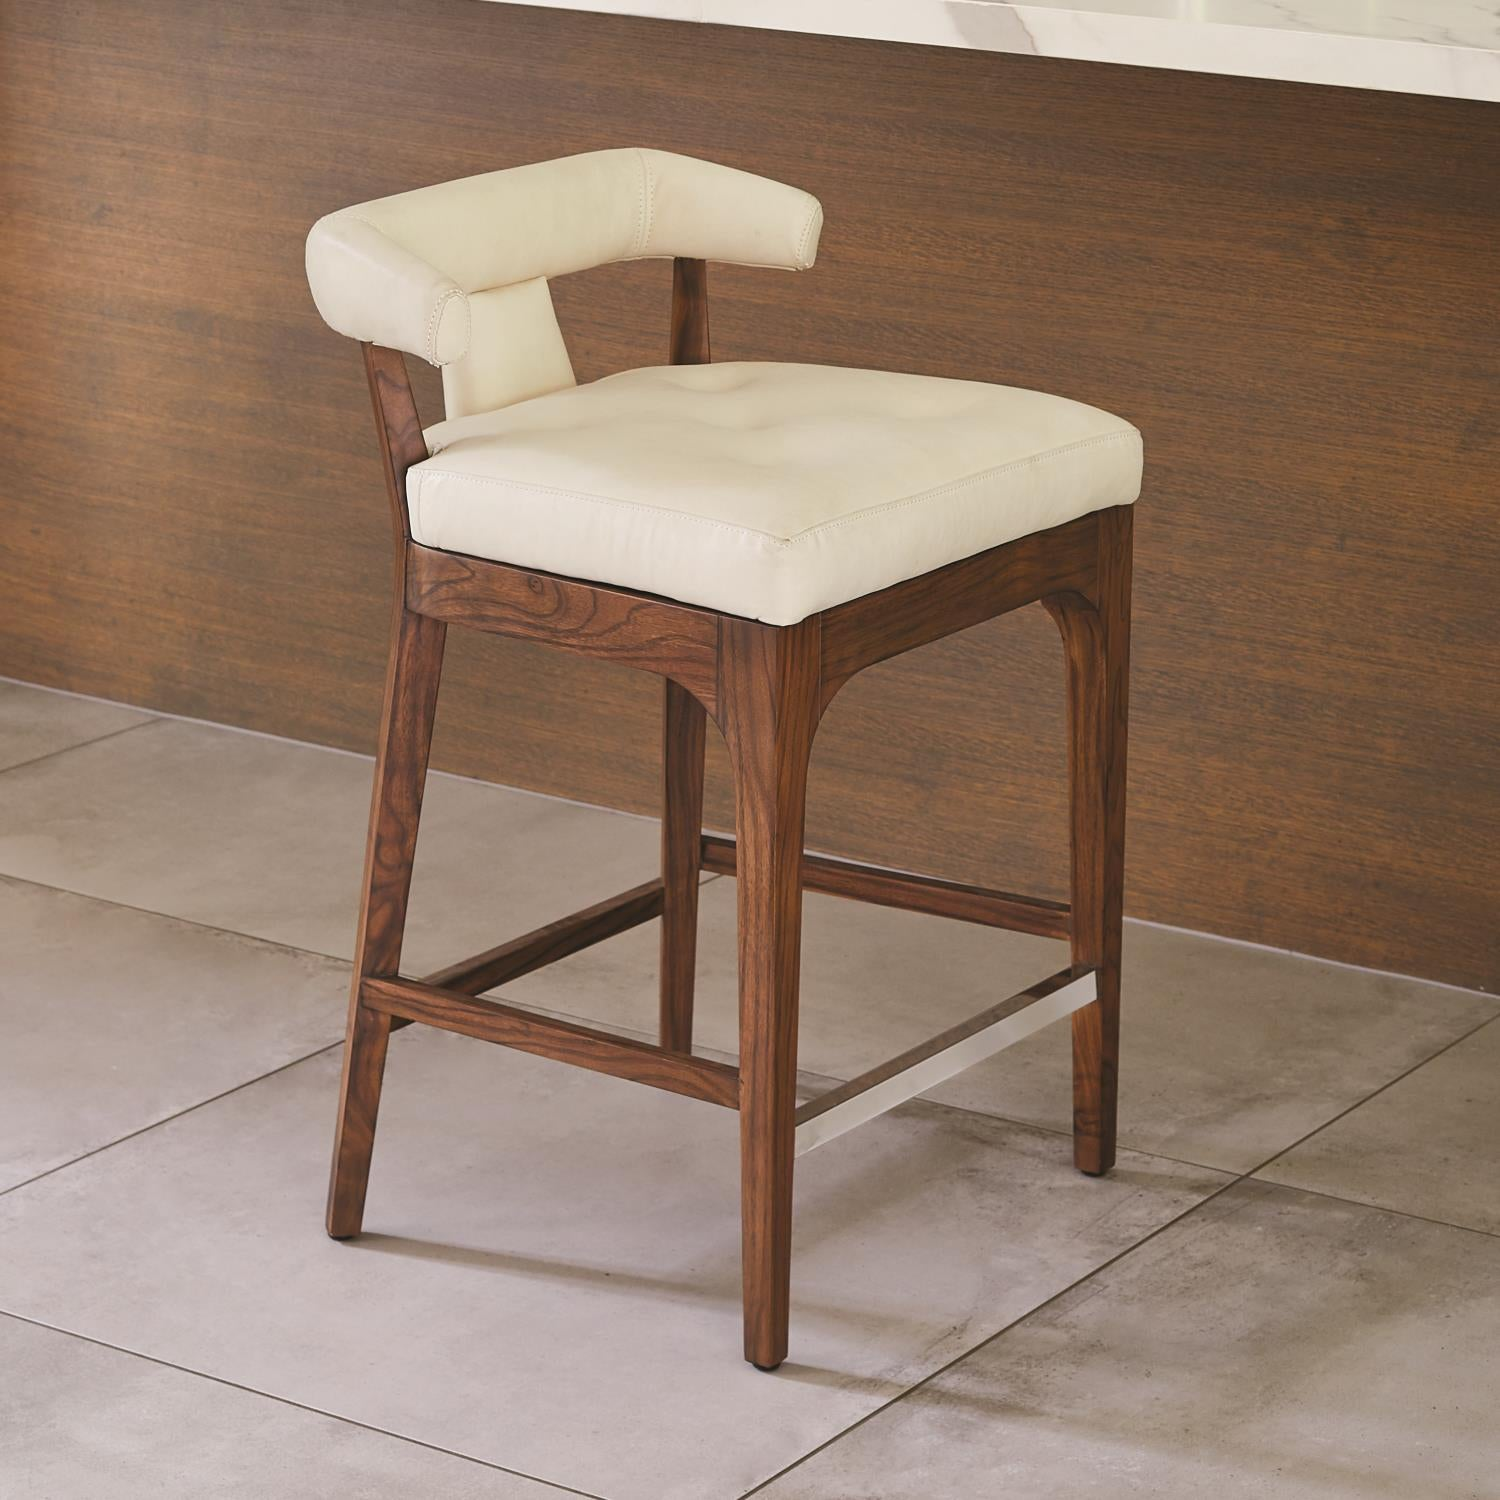 Excellent Moderno Counter Stool Ivory Marble Leather Creativecarmelina Interior Chair Design Creativecarmelinacom